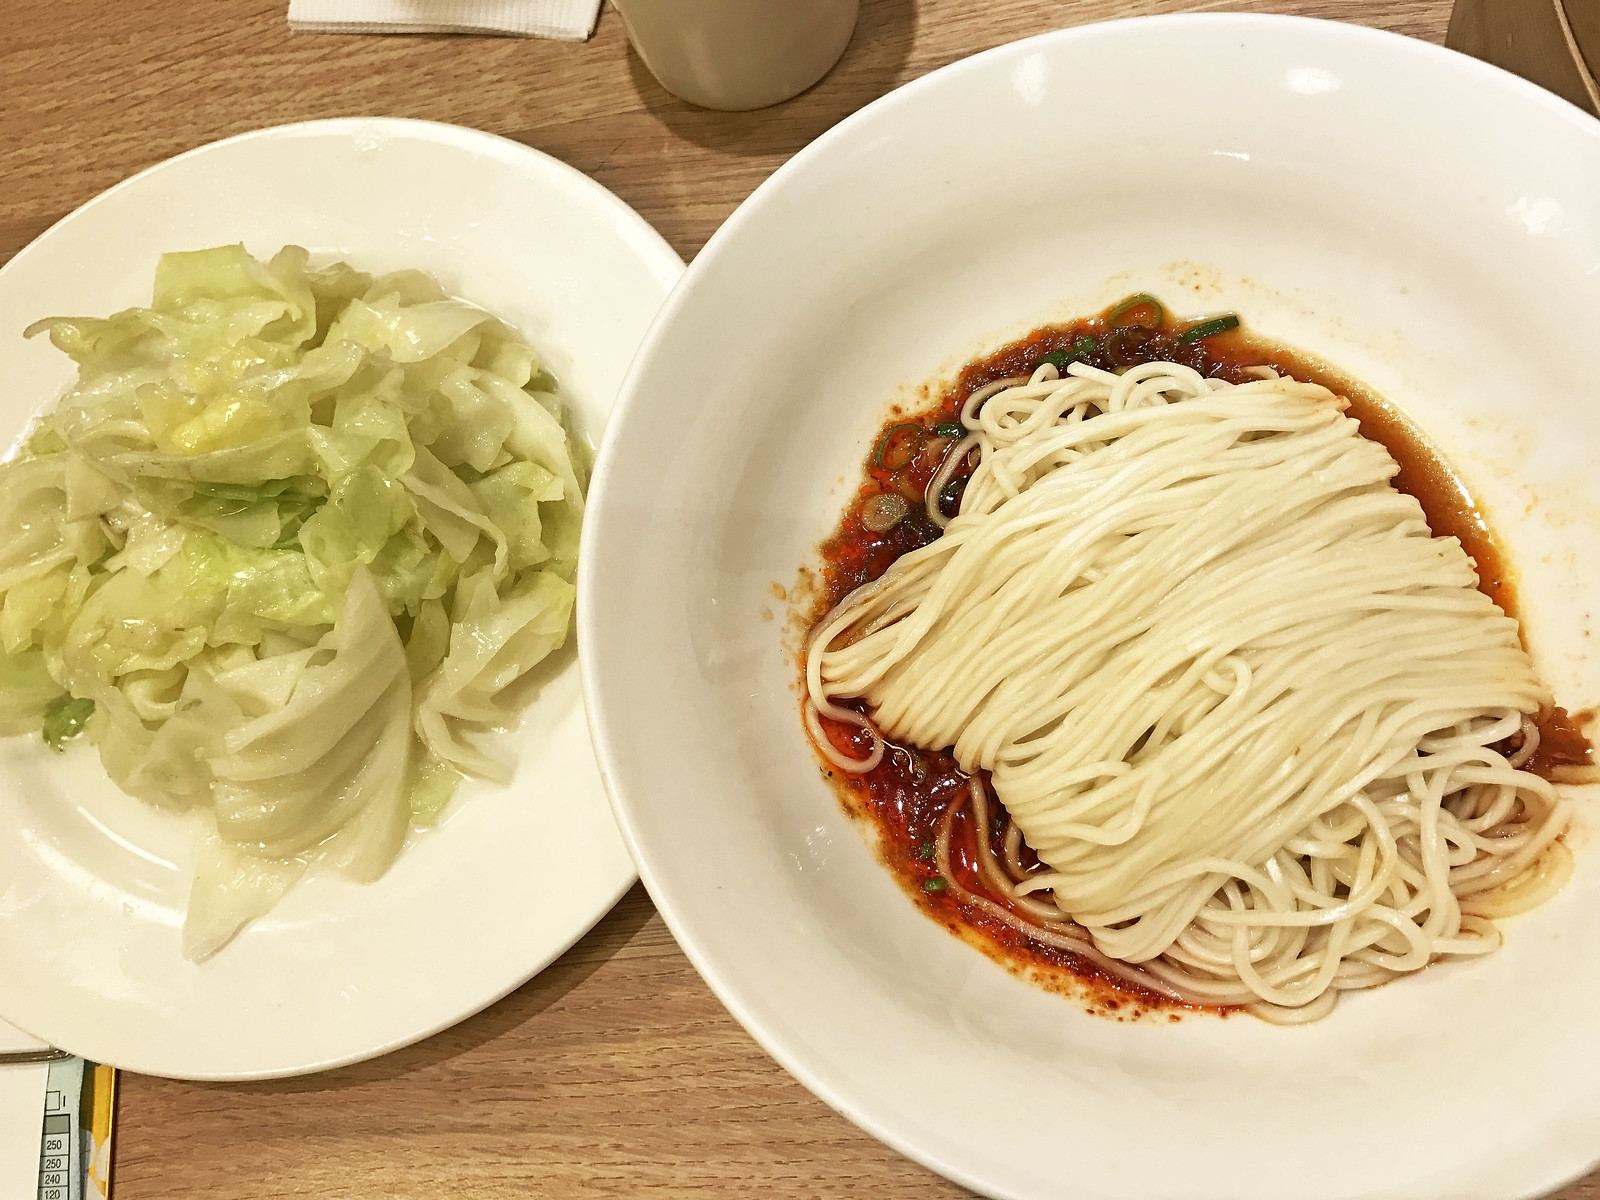 Stir-fried cabbage and house special spicy noodles